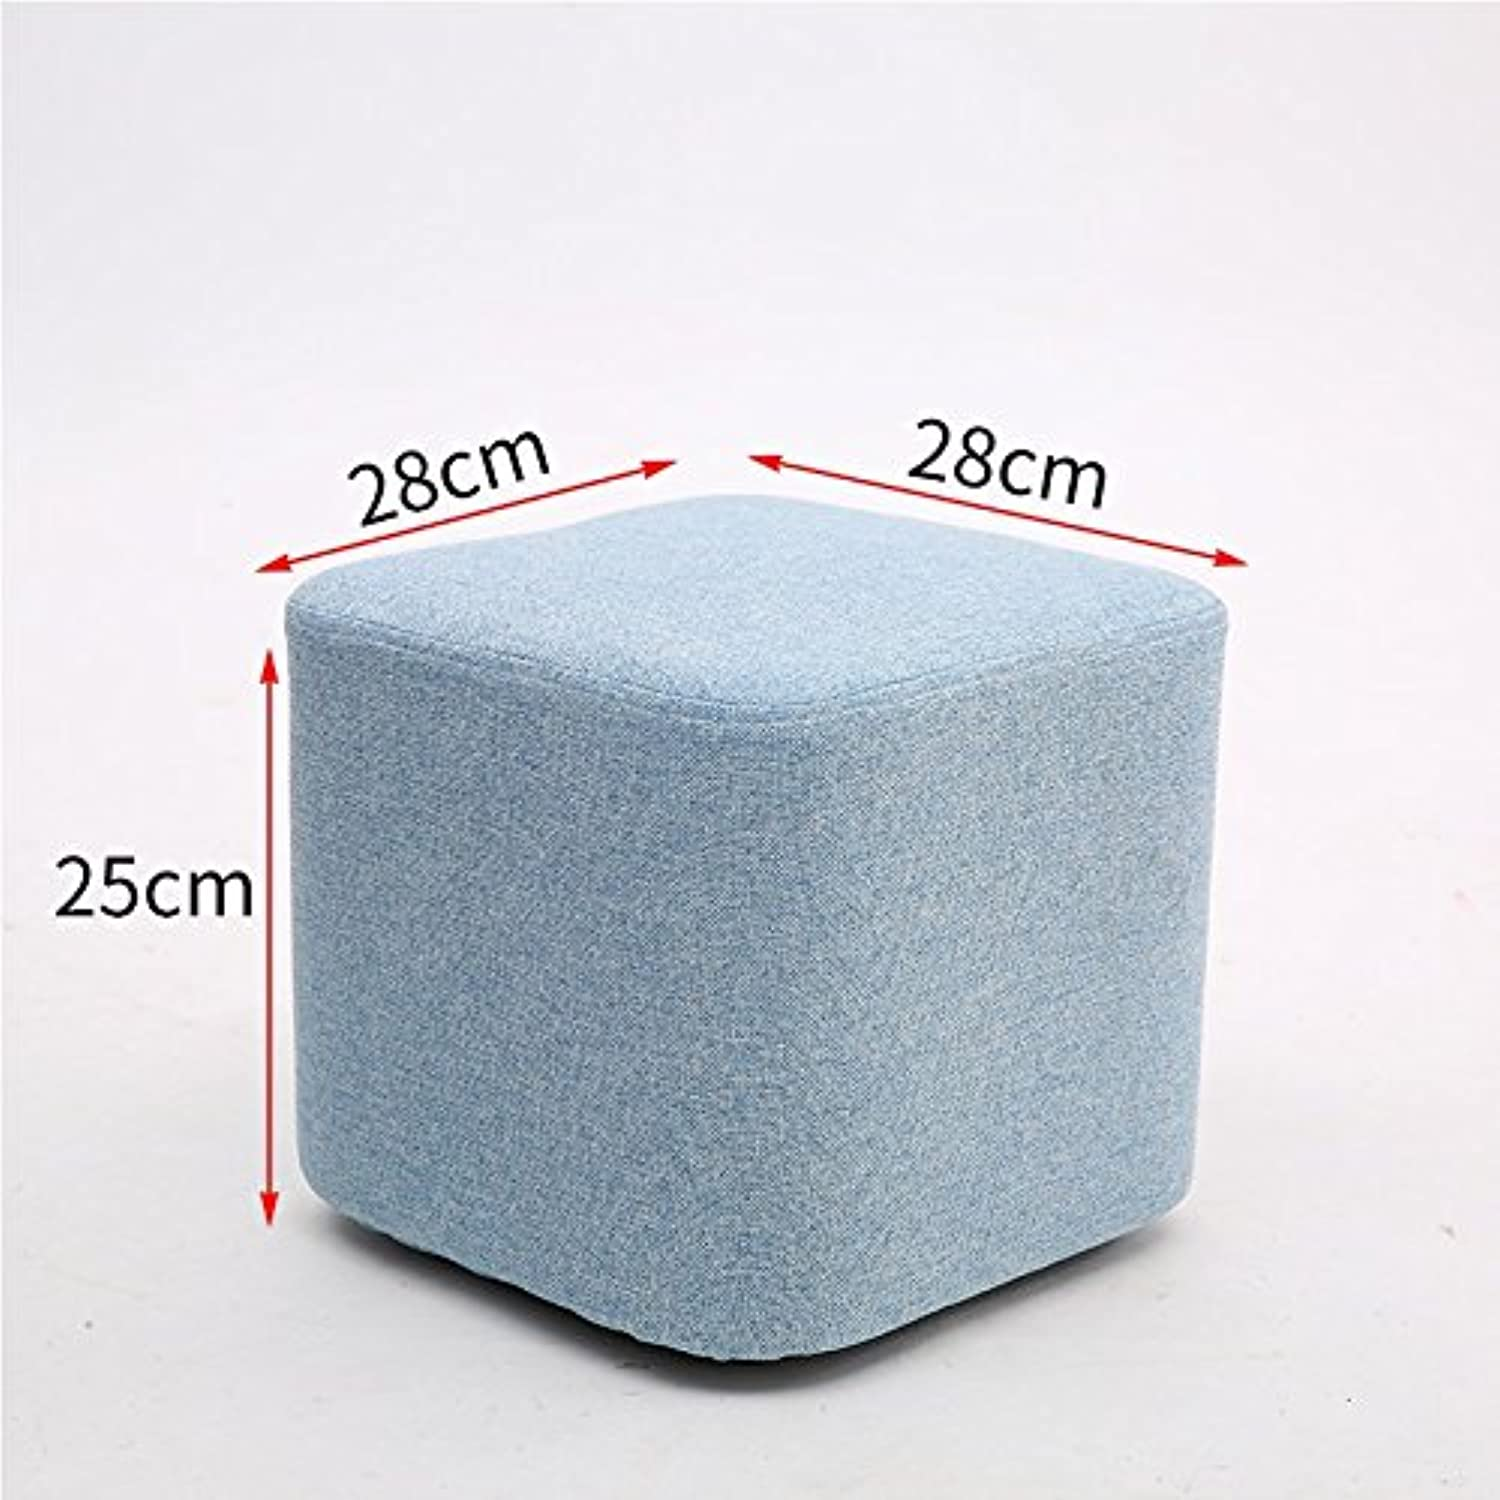 STJK BMJW Drinking Tea Thick Soft Stools Benches Fabrics Stool Home Independent Bedroom Light bluee